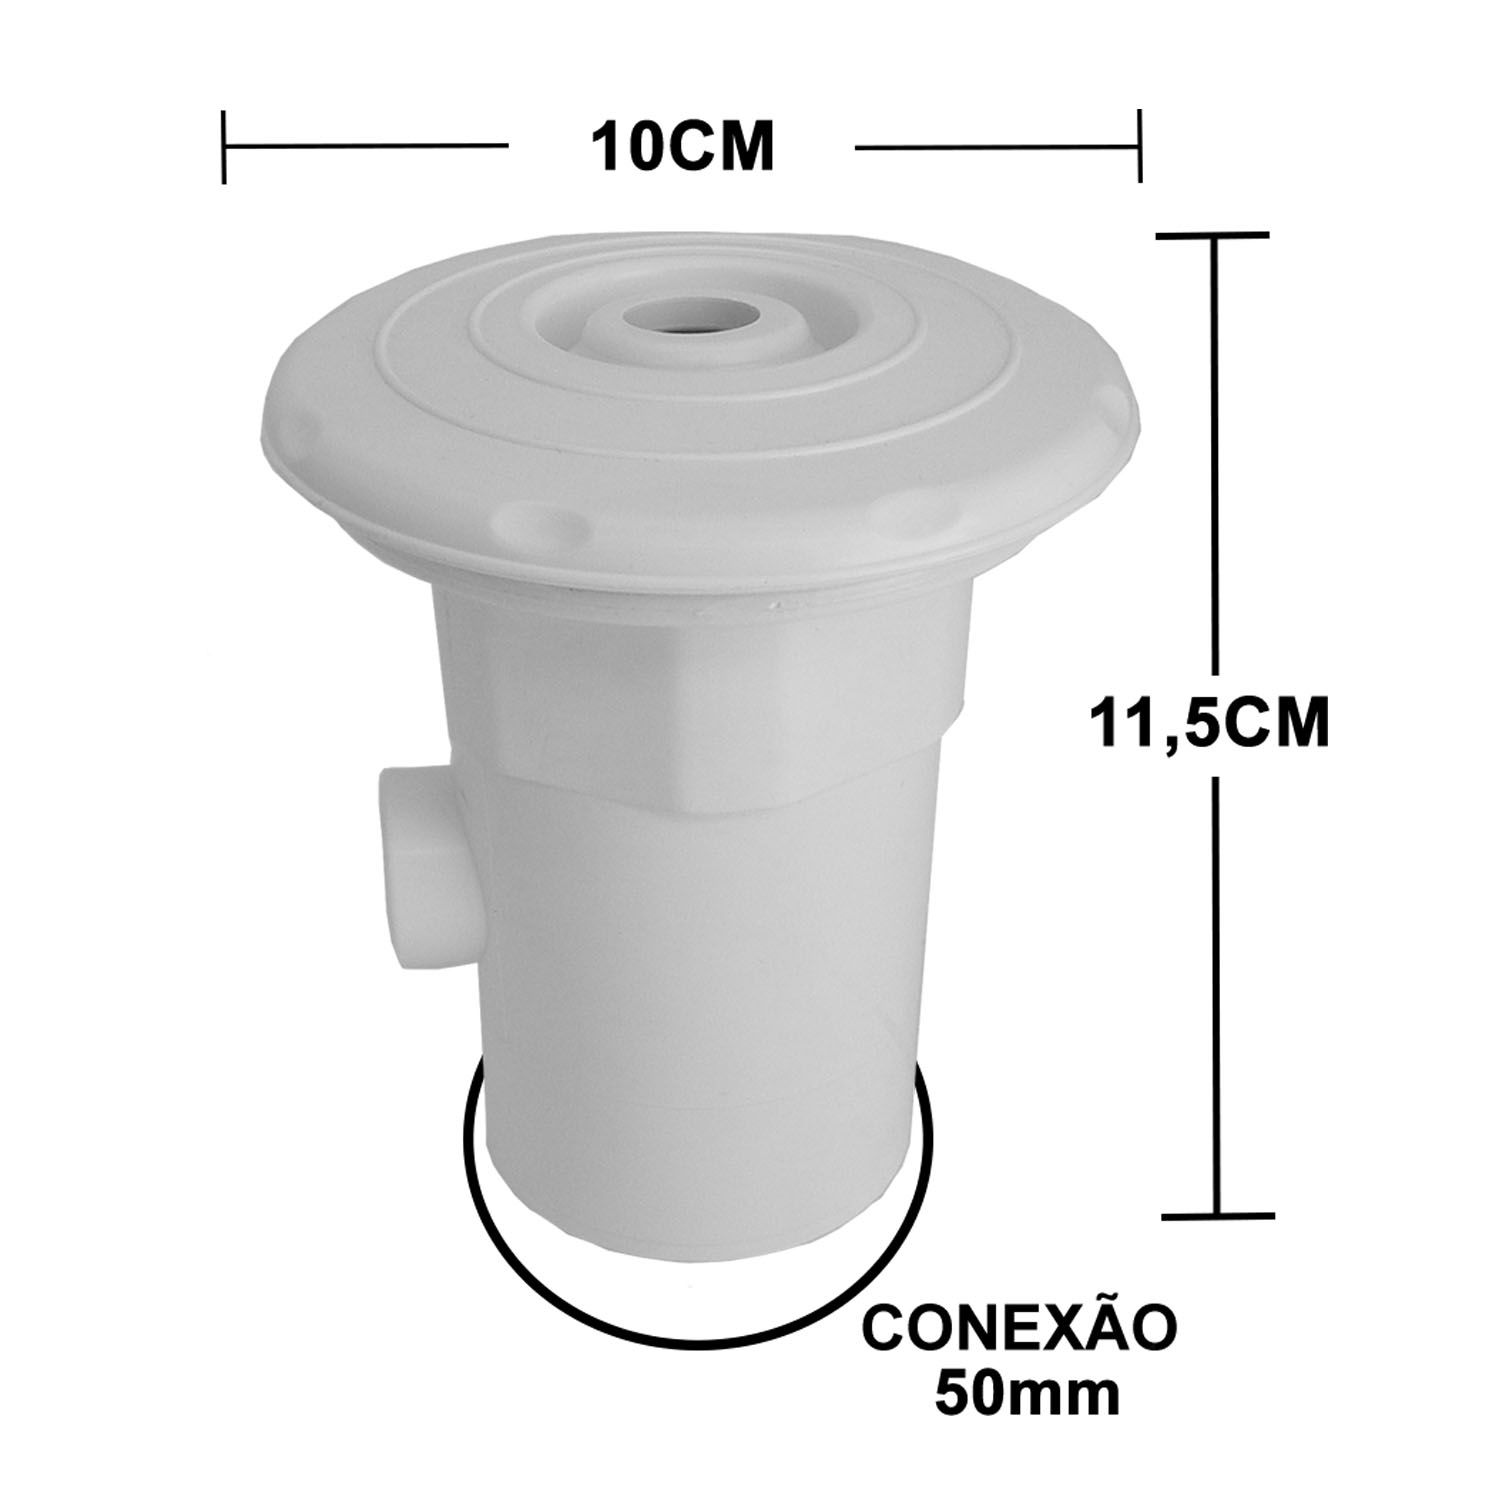 Dispositivo de Hidromassagem ABS 1 1/2'' - Fibra/Alvenaria